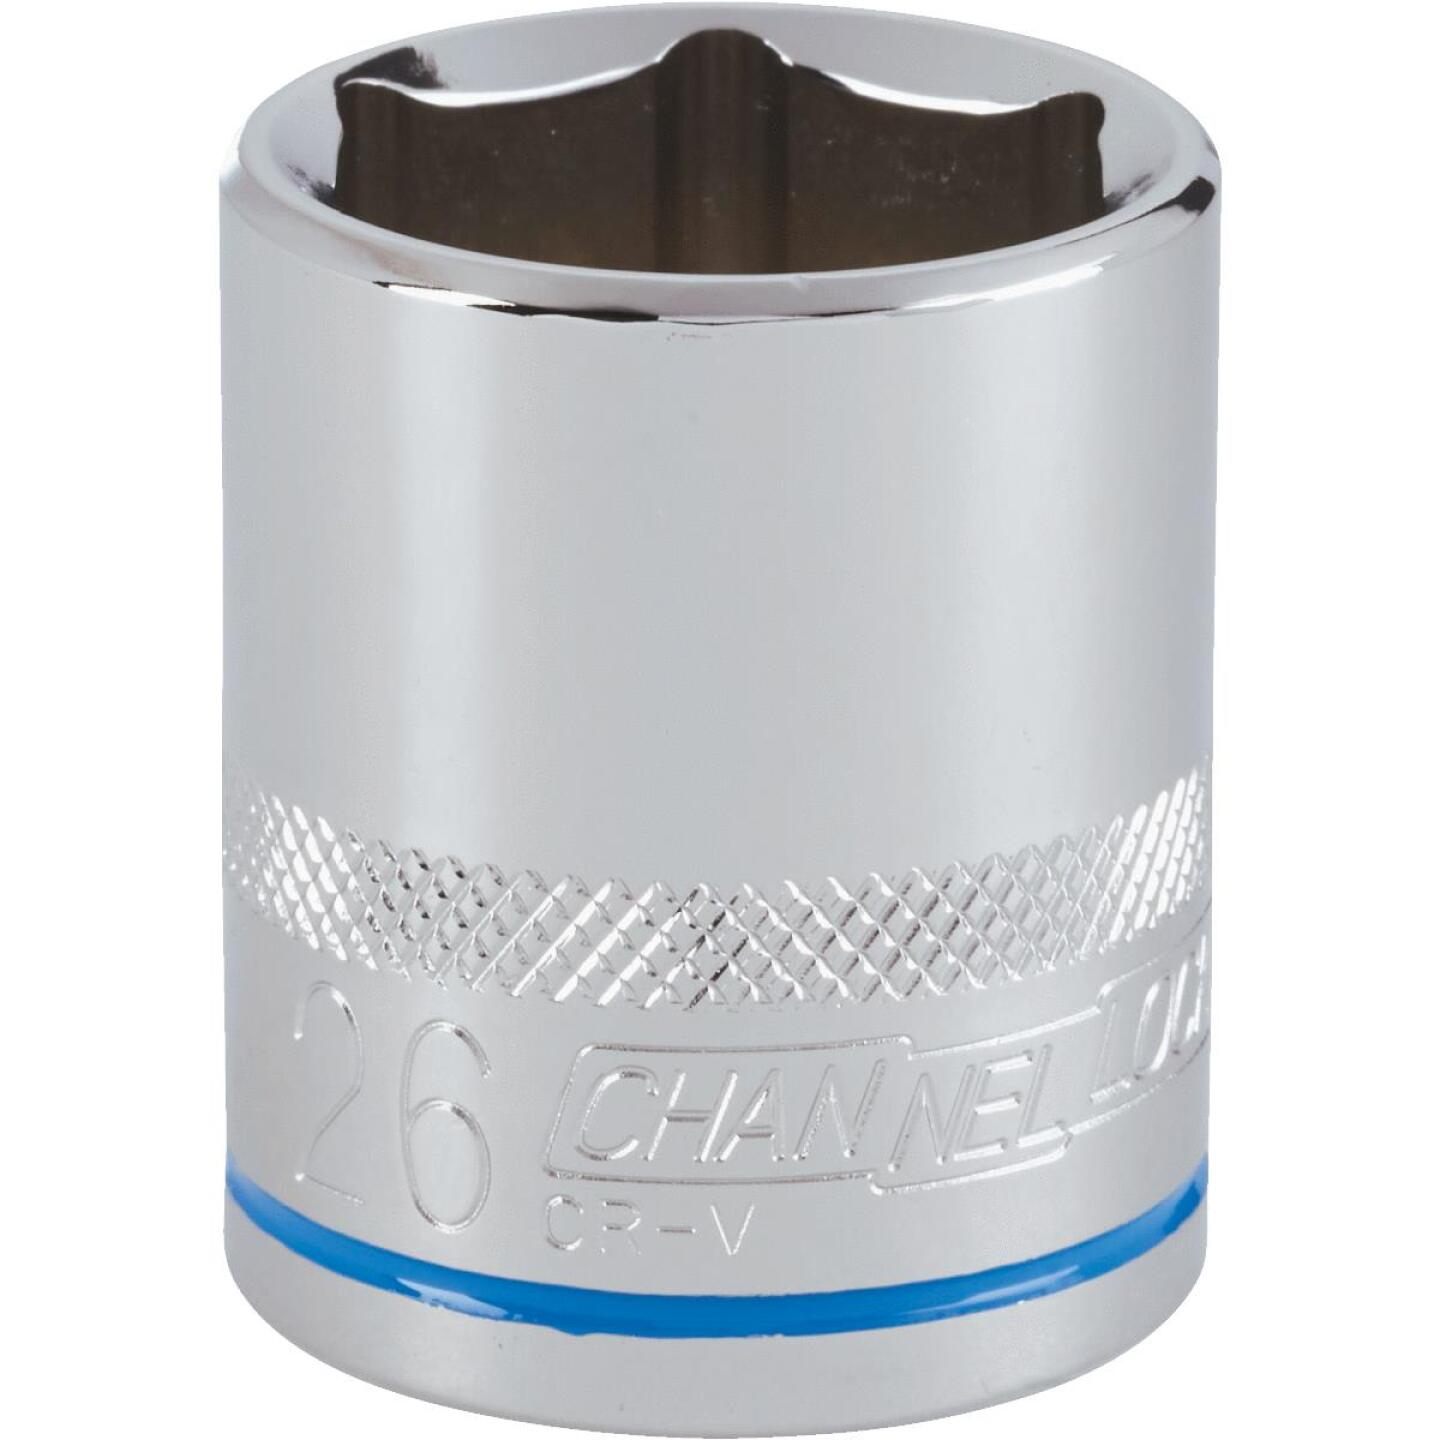 Channellock 1/2 In. Drive 26 mm 6-Point Shallow Metric Socket Image 1